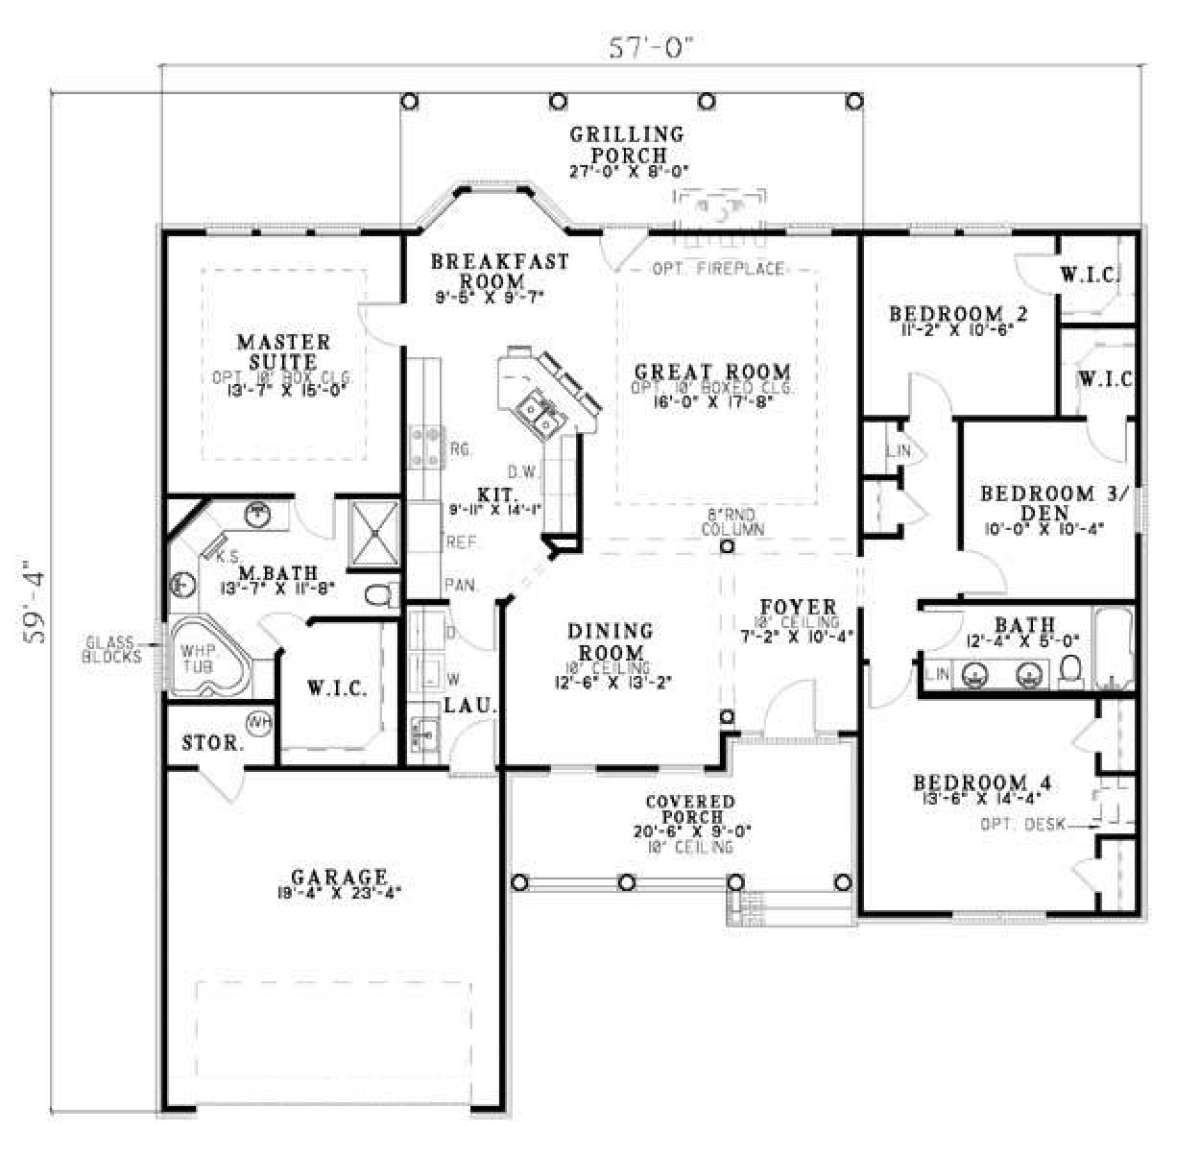 Traditional Plan: 1,911 Square Feet, 4 Bedrooms, 2 Bathrooms - 110-00371